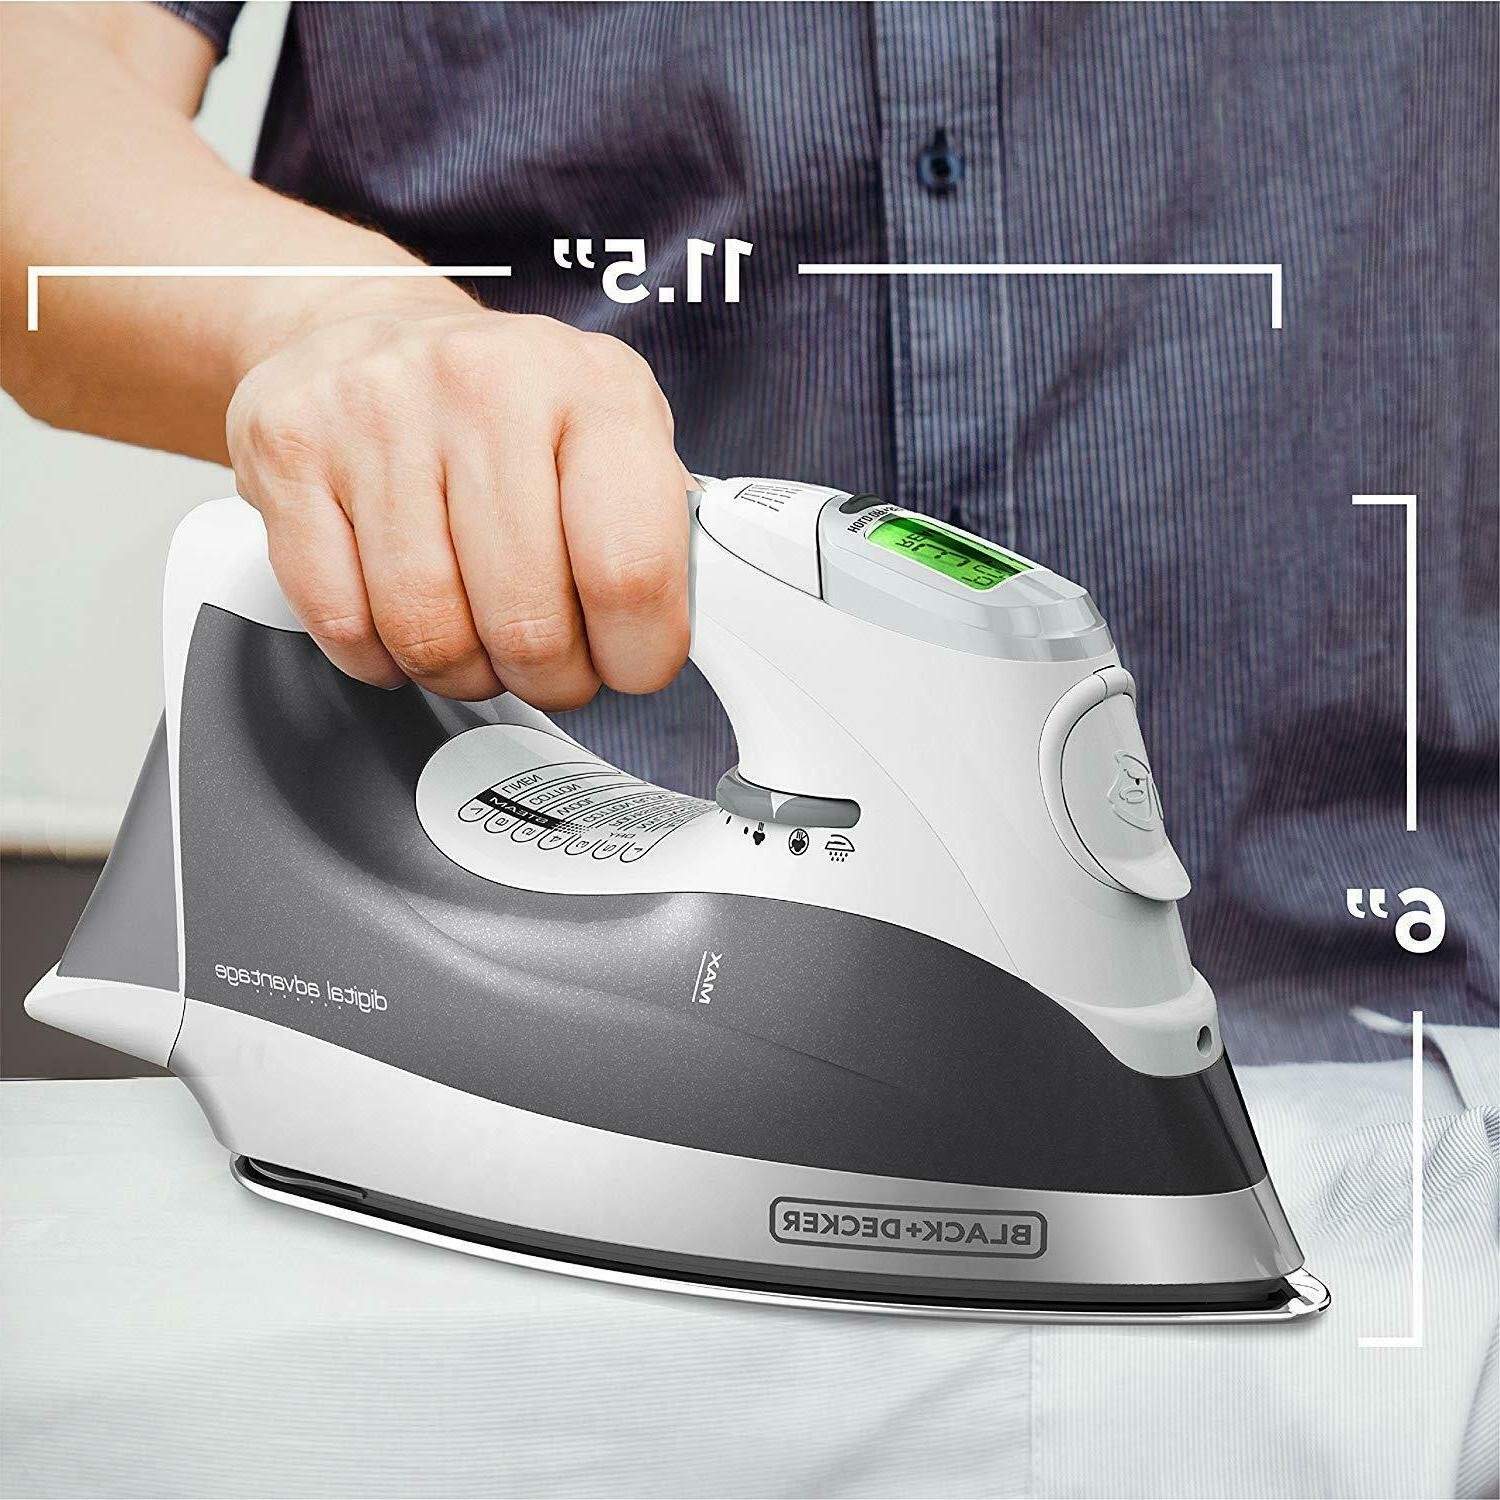 Digital Advantage Professional Iron,